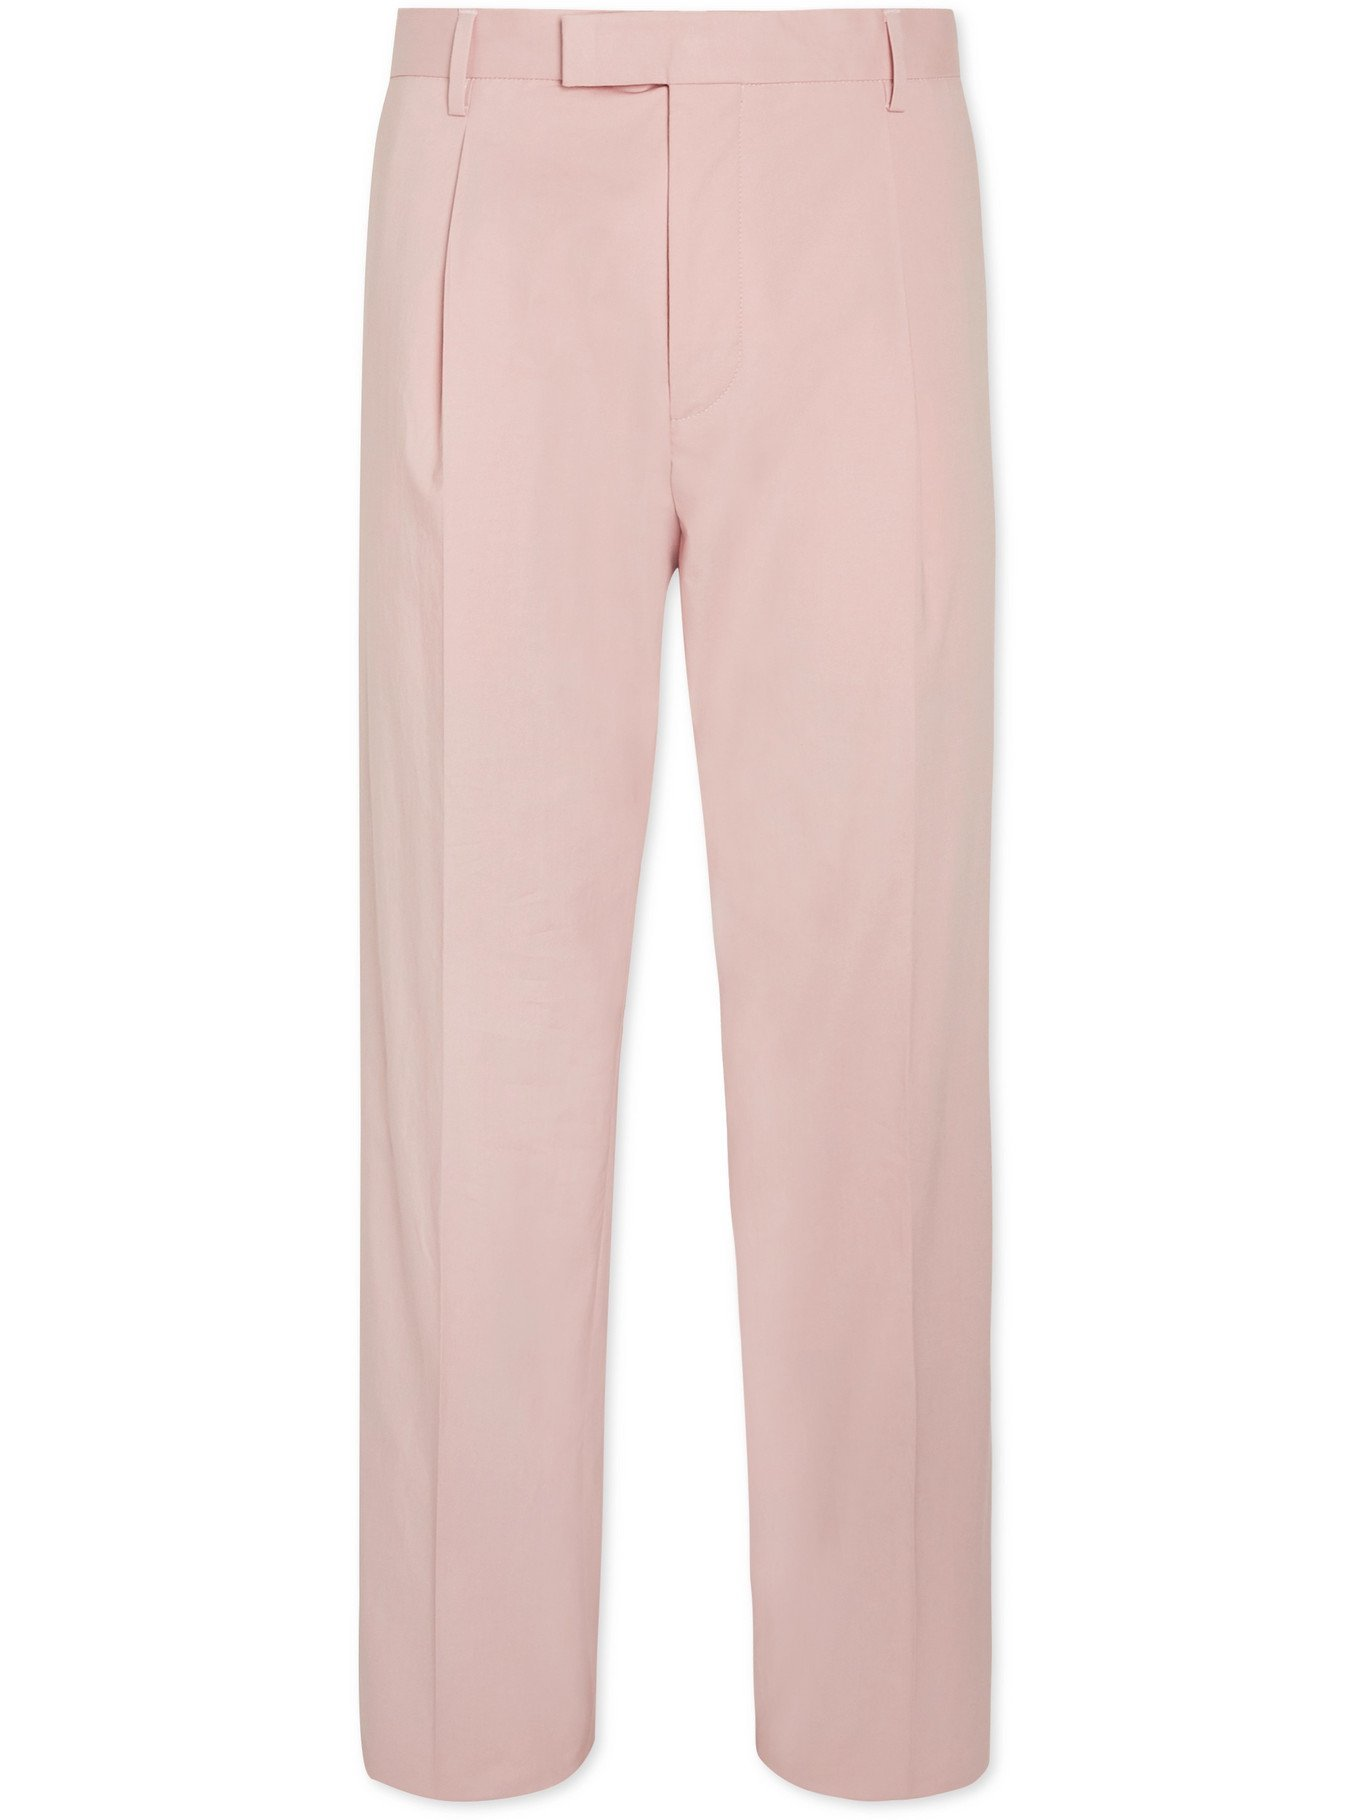 HUGO BOSS - Pris Pleated Stretch-Cotton Suit Trousers - Pink